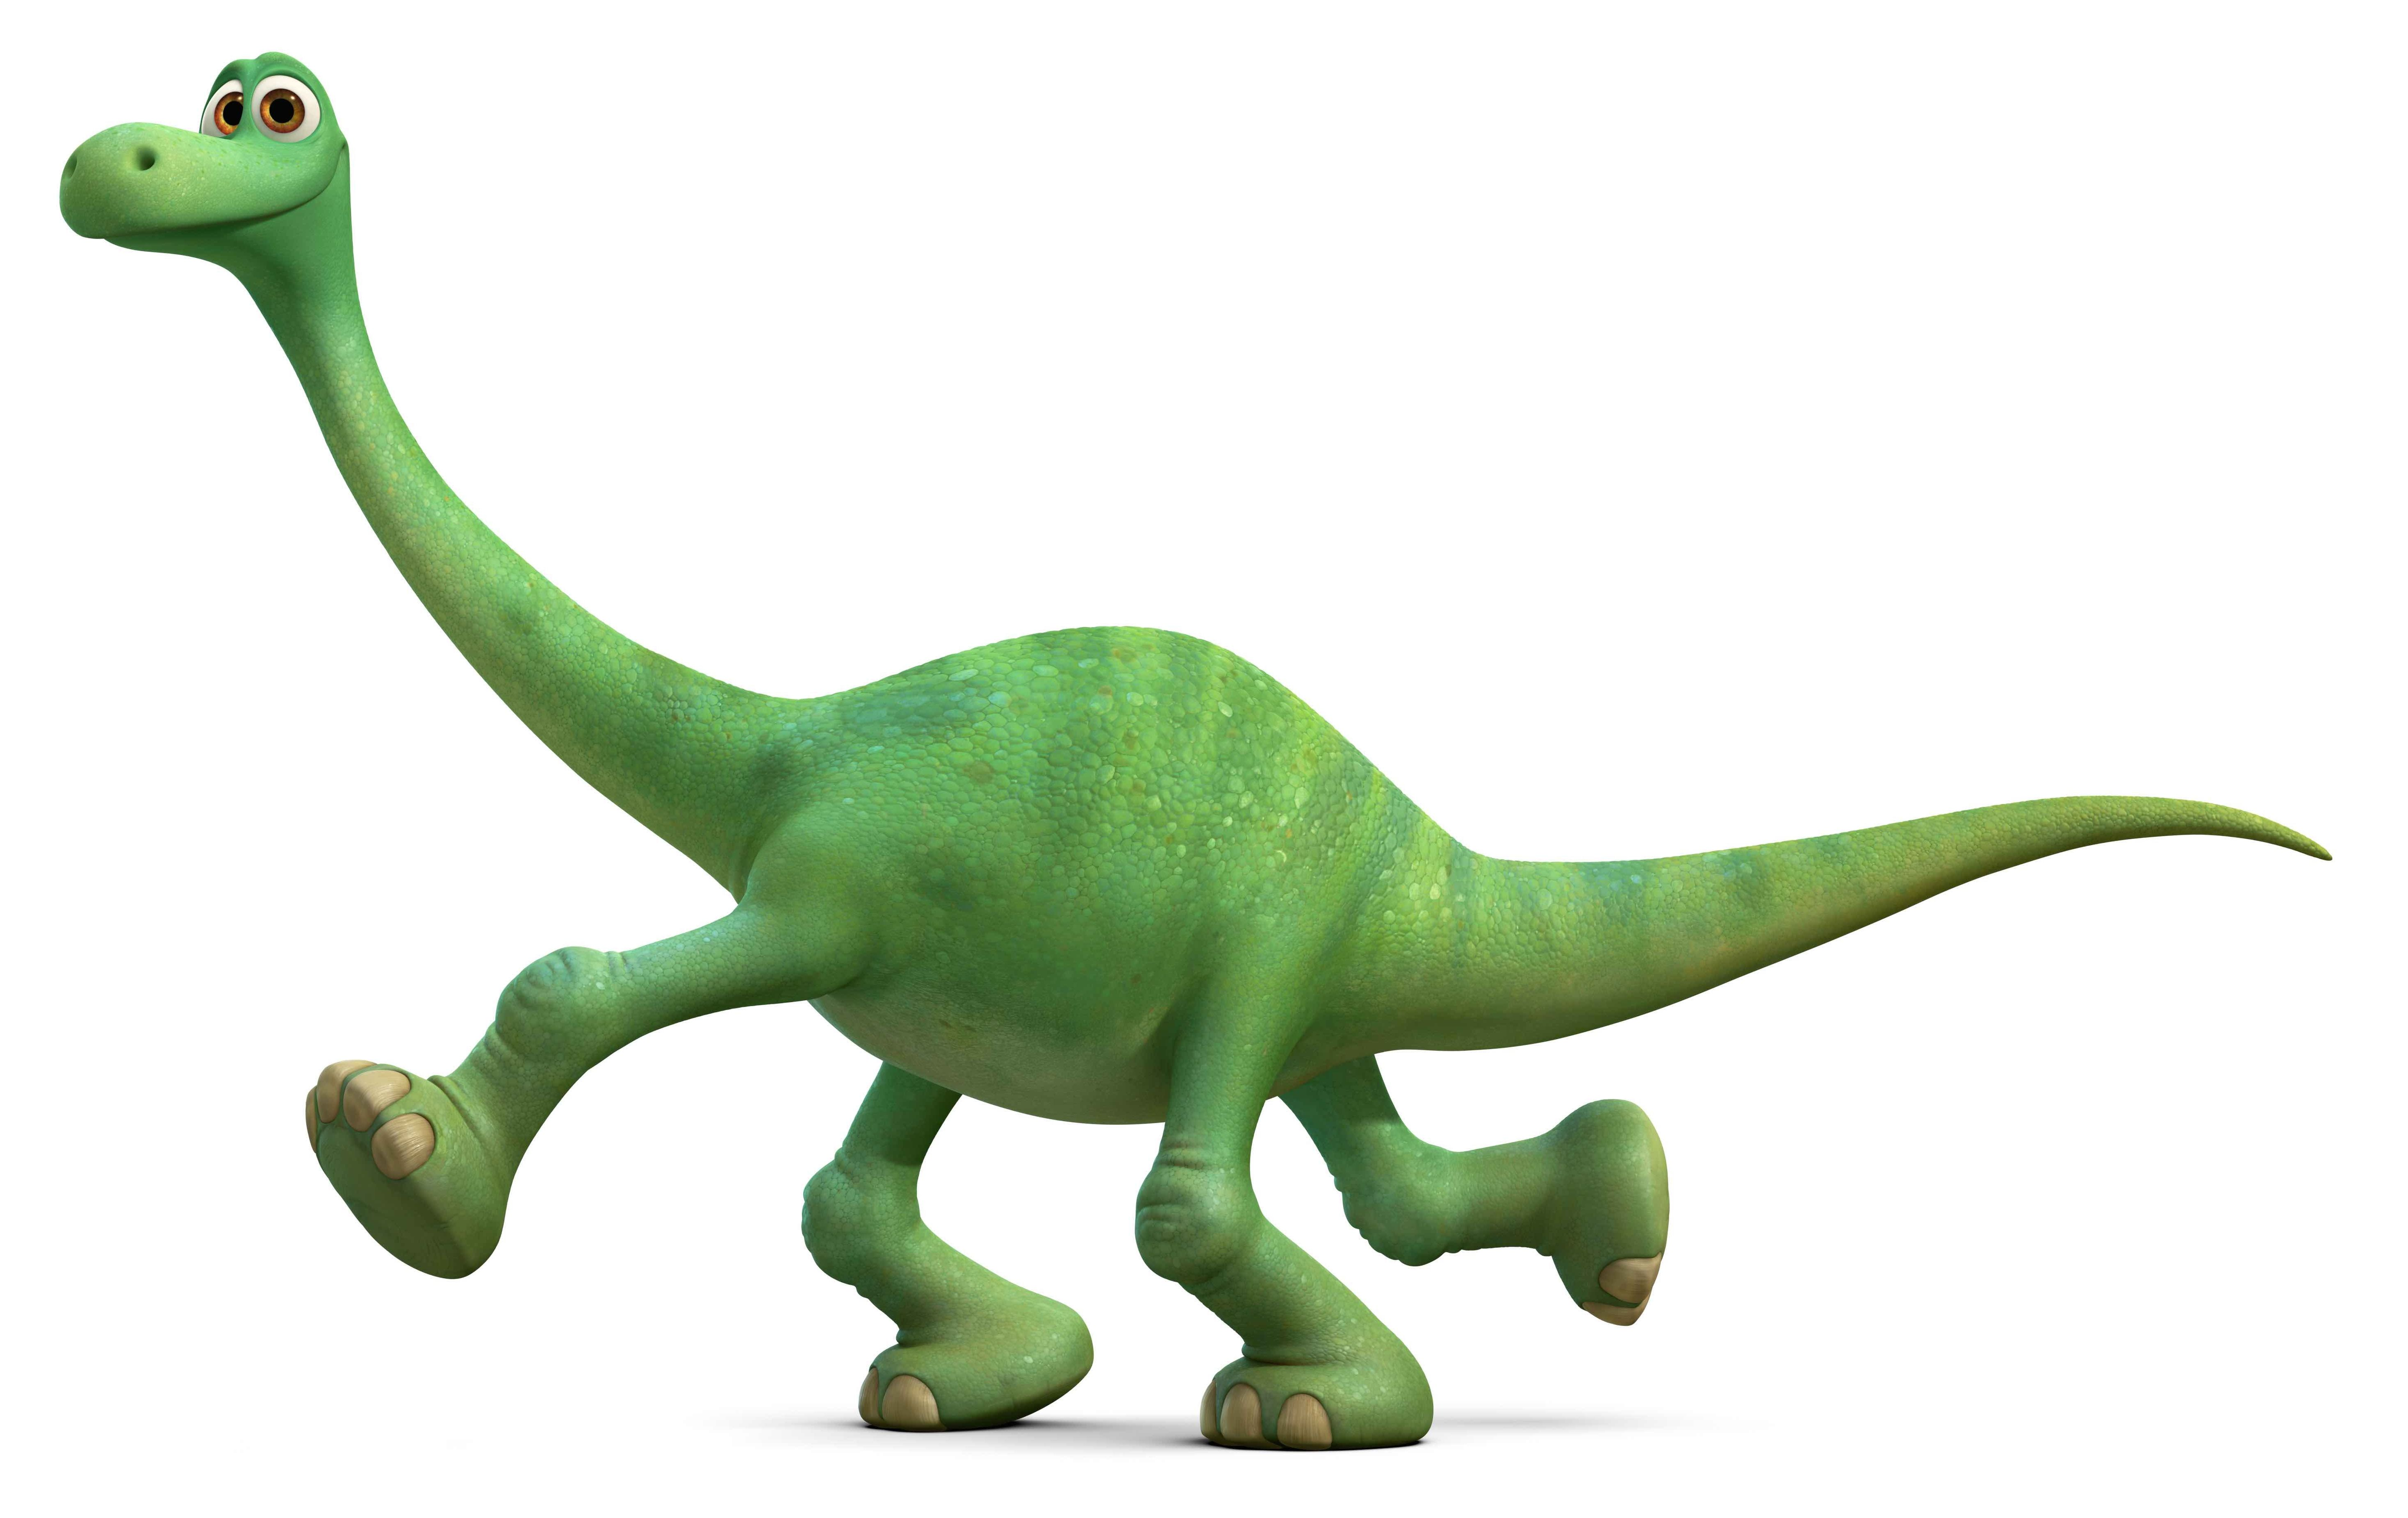 arlo the good dinosaur the good dinosaur pinterest disney images. Black Bedroom Furniture Sets. Home Design Ideas